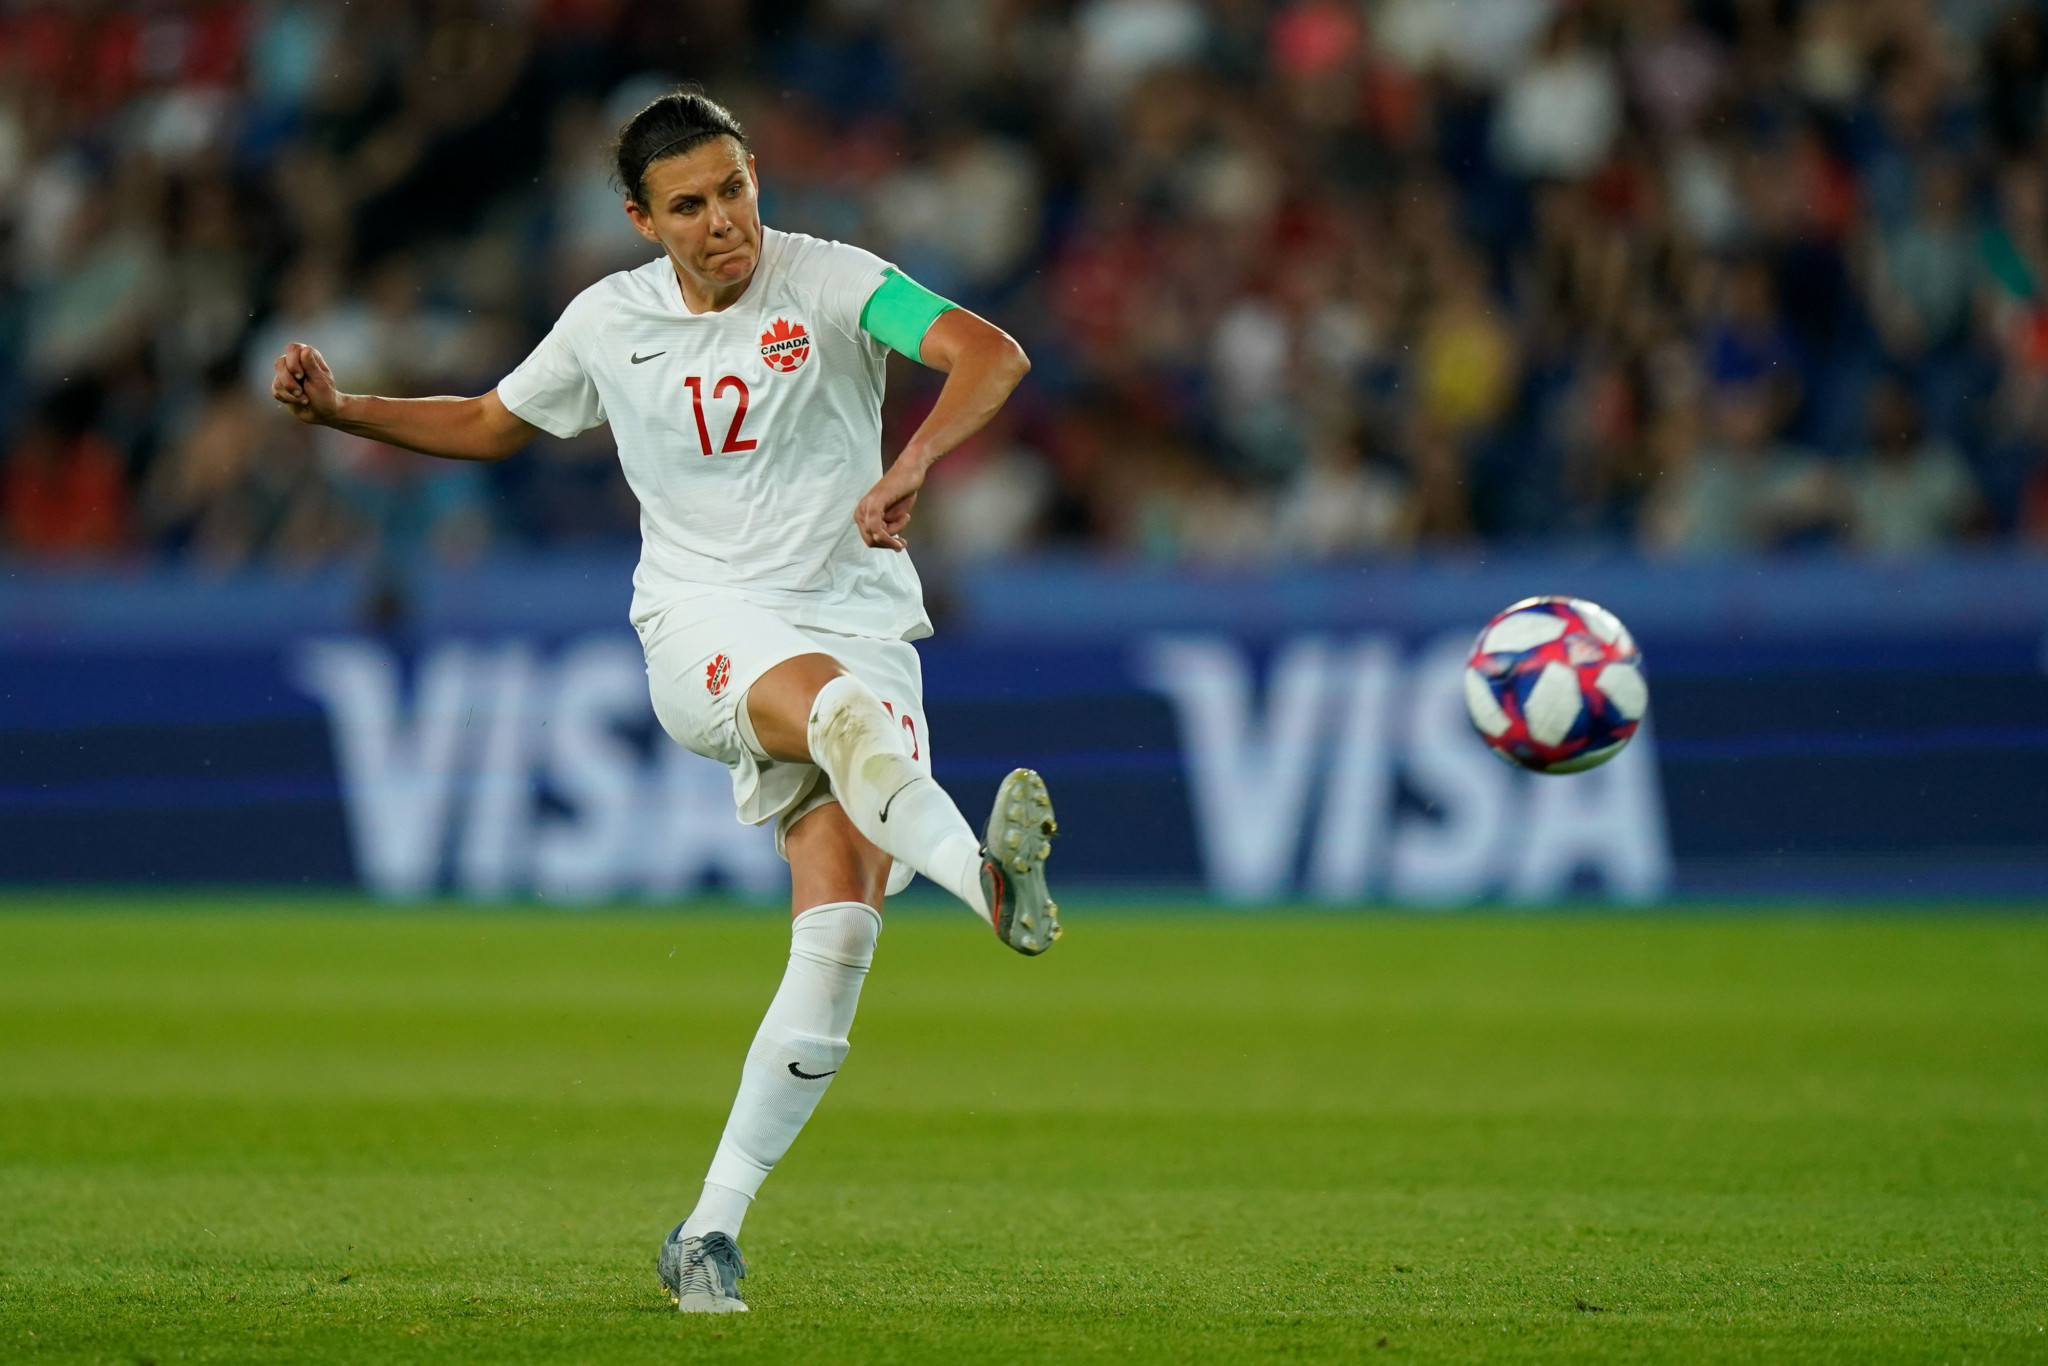 Christine Sinclair, Canada's all-time leading scorer, will aim to qualify for her fourth Olympics at the age of 36 ©Getty Images